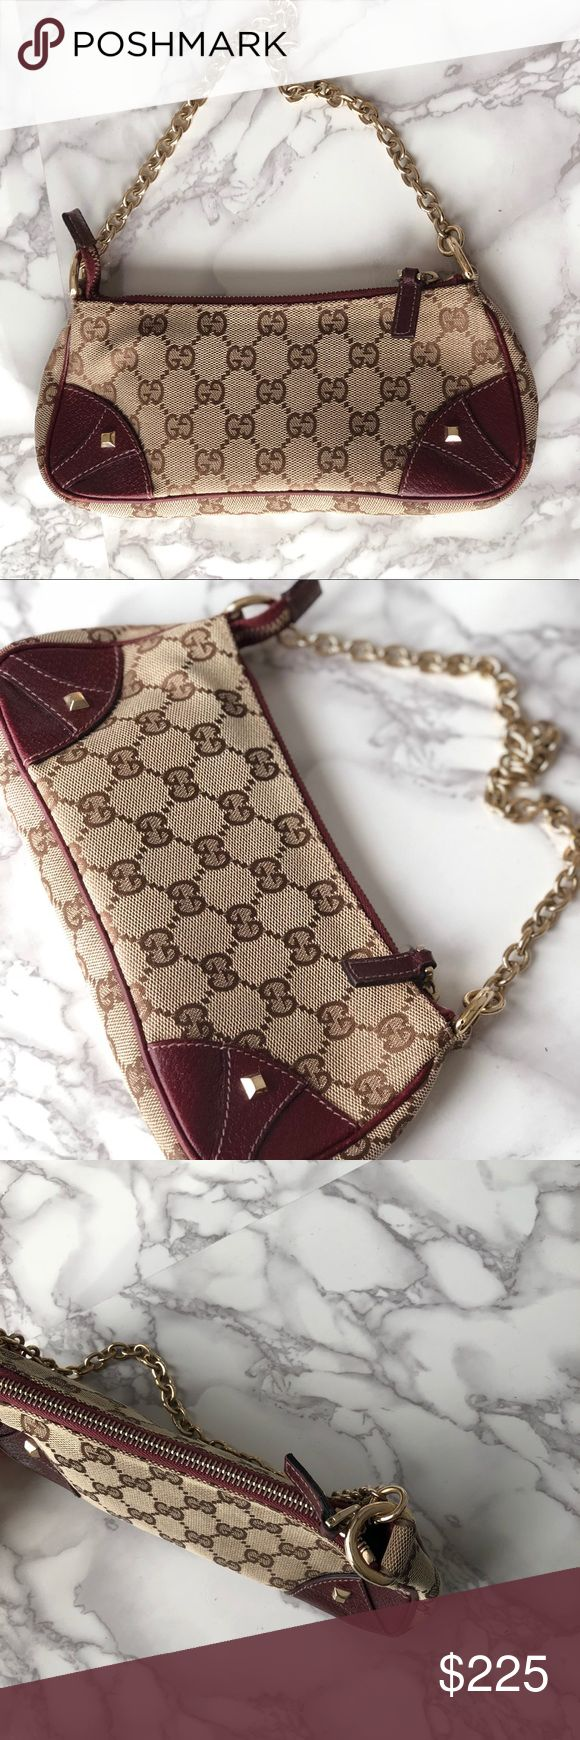 """Gucci Monogram Clutch Gucci Monogram Clutch 100% Authentic Signs of wear 7.5"""" chain Gucci Bags Clutches & Wristlets"""